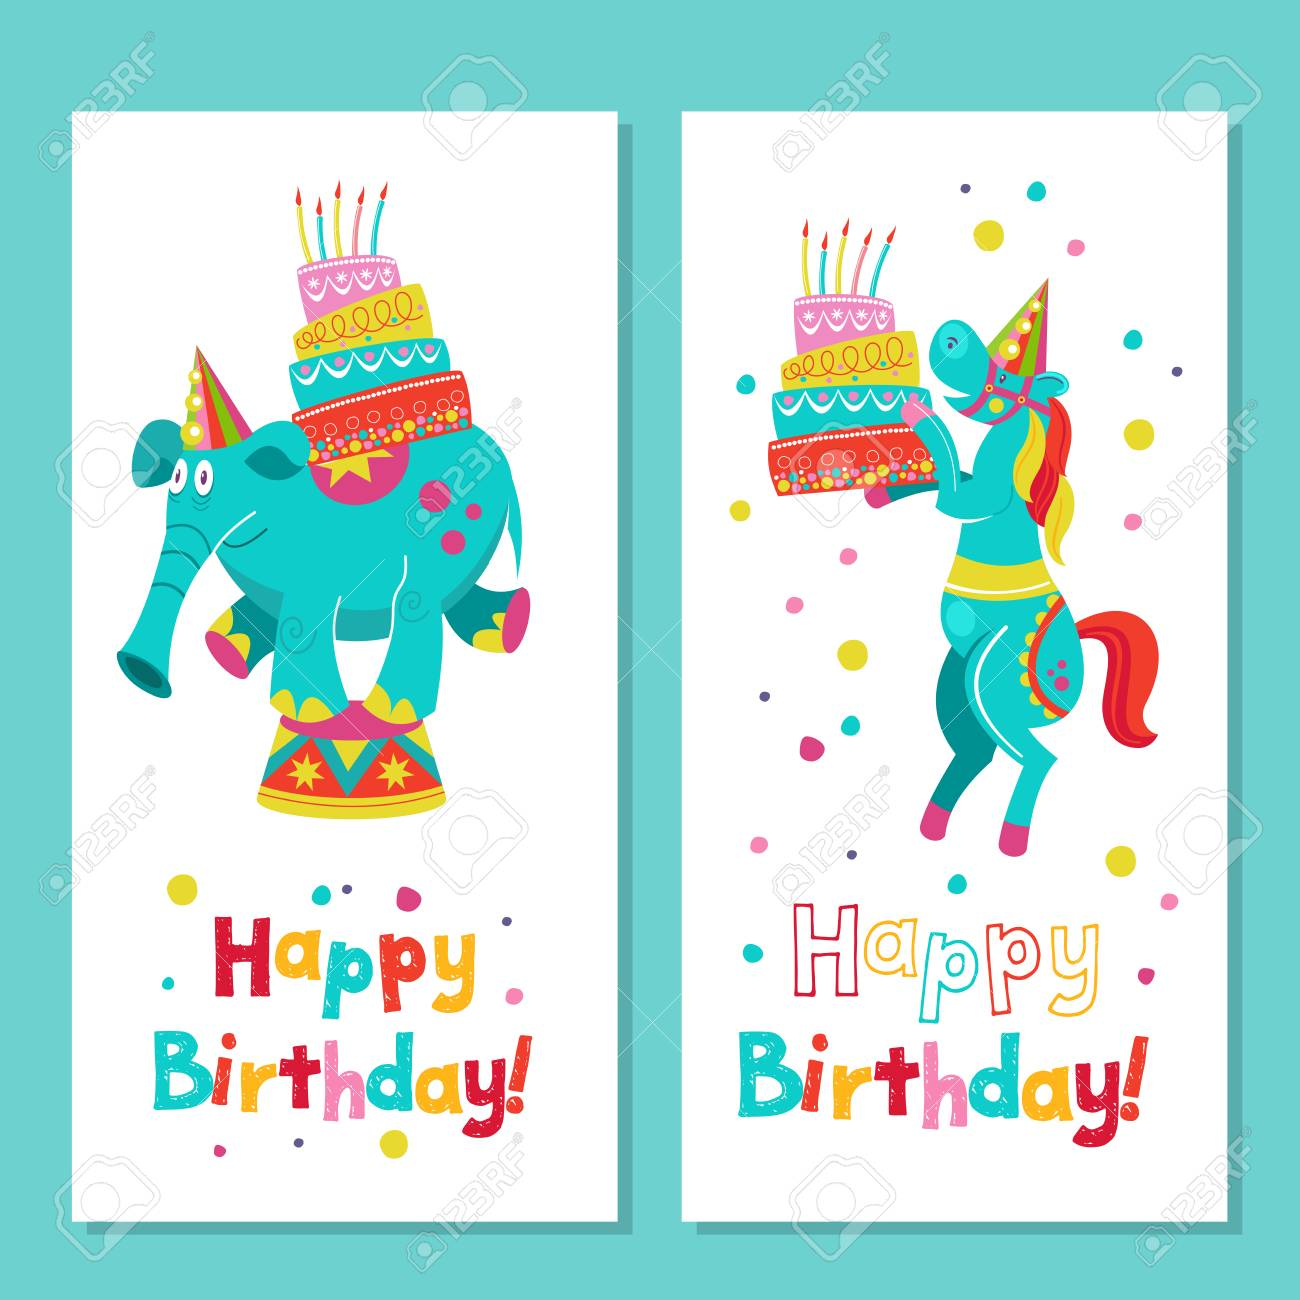 Happy Birthday! Greeting Template. A Set Of Holiday Vector Elements ...